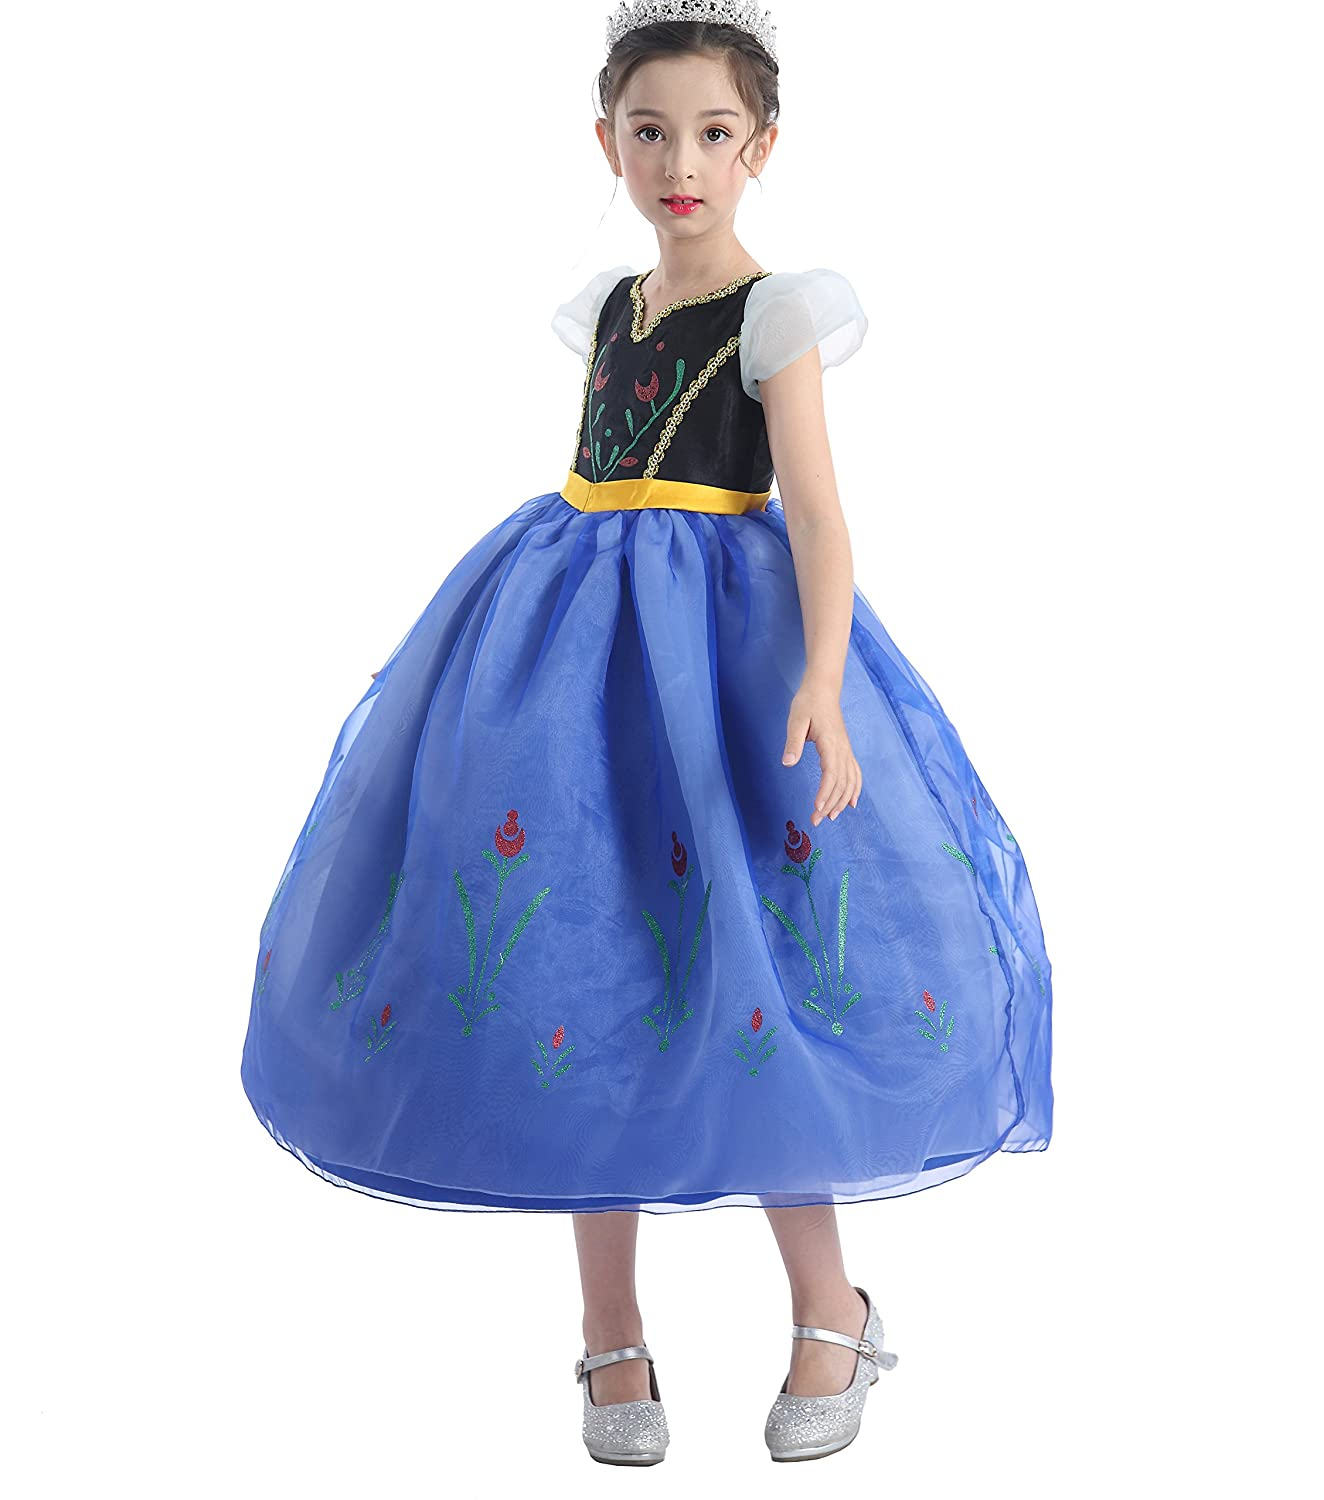 10 Dressy Daisy Girls Princess Anna Dress Up Costumes Fancy Party Dress Halloween Outfit